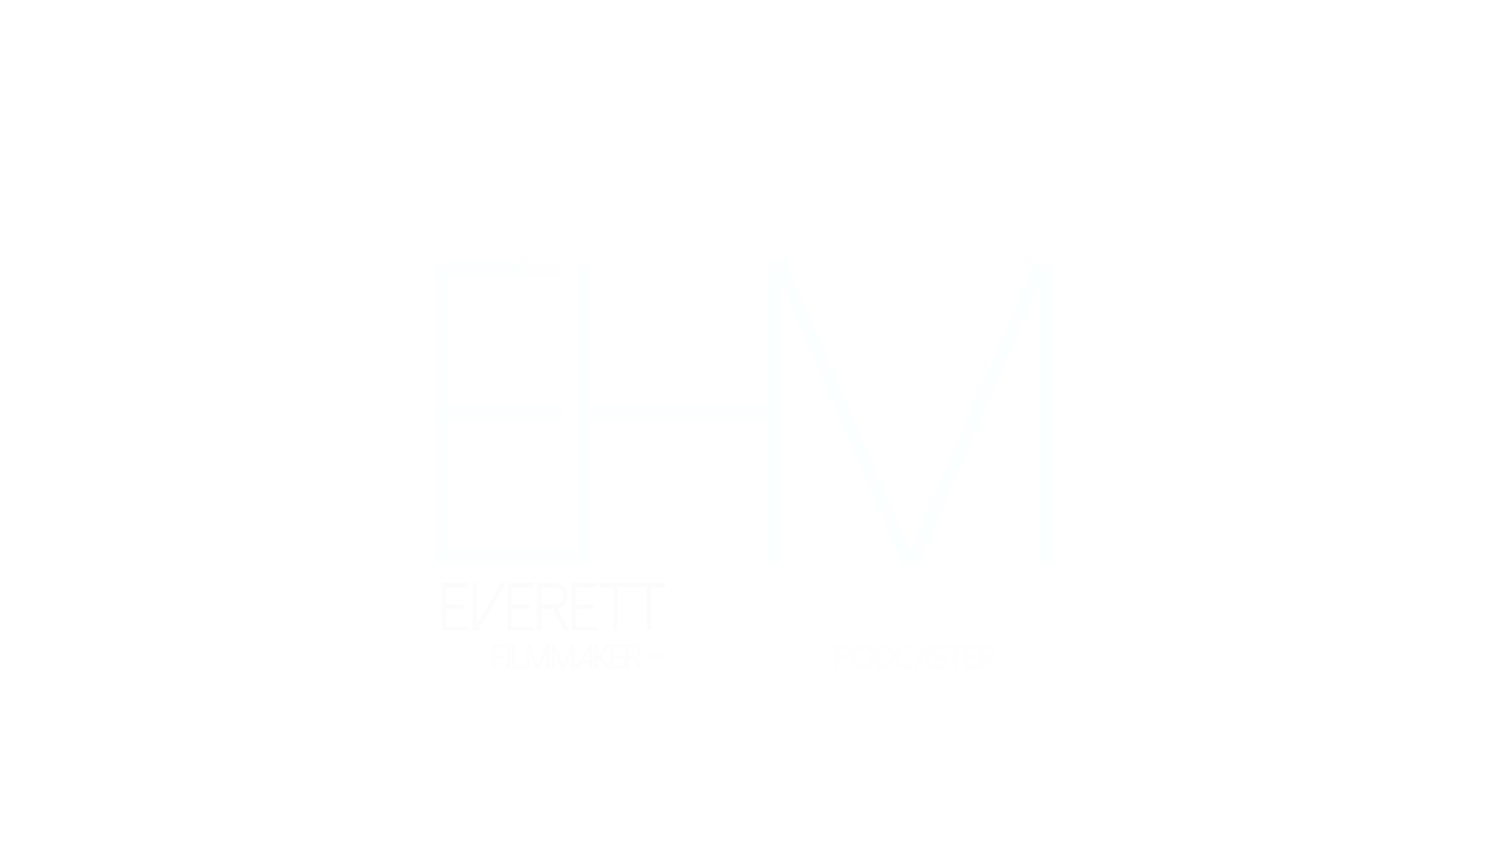 Everett Hall-McNeill